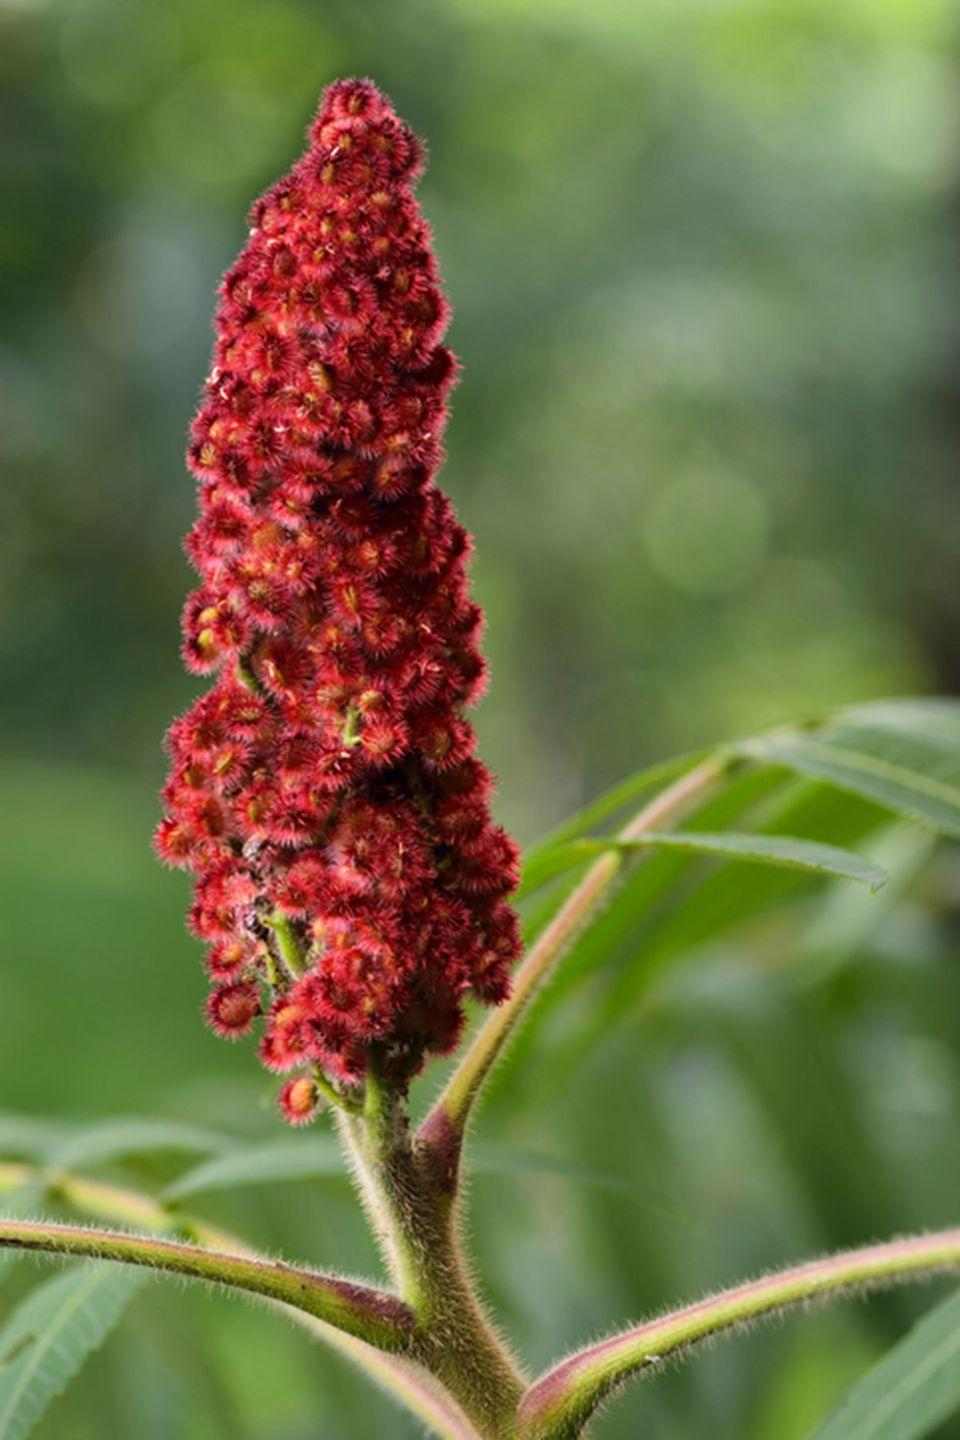 <p>The sumac shrub can grow up to 30 feet high. Their flowers are a stunning crimson red, and some species grow fruits that produce a tangy spice. </p><p><strong>Zones: 2-9</strong></p>